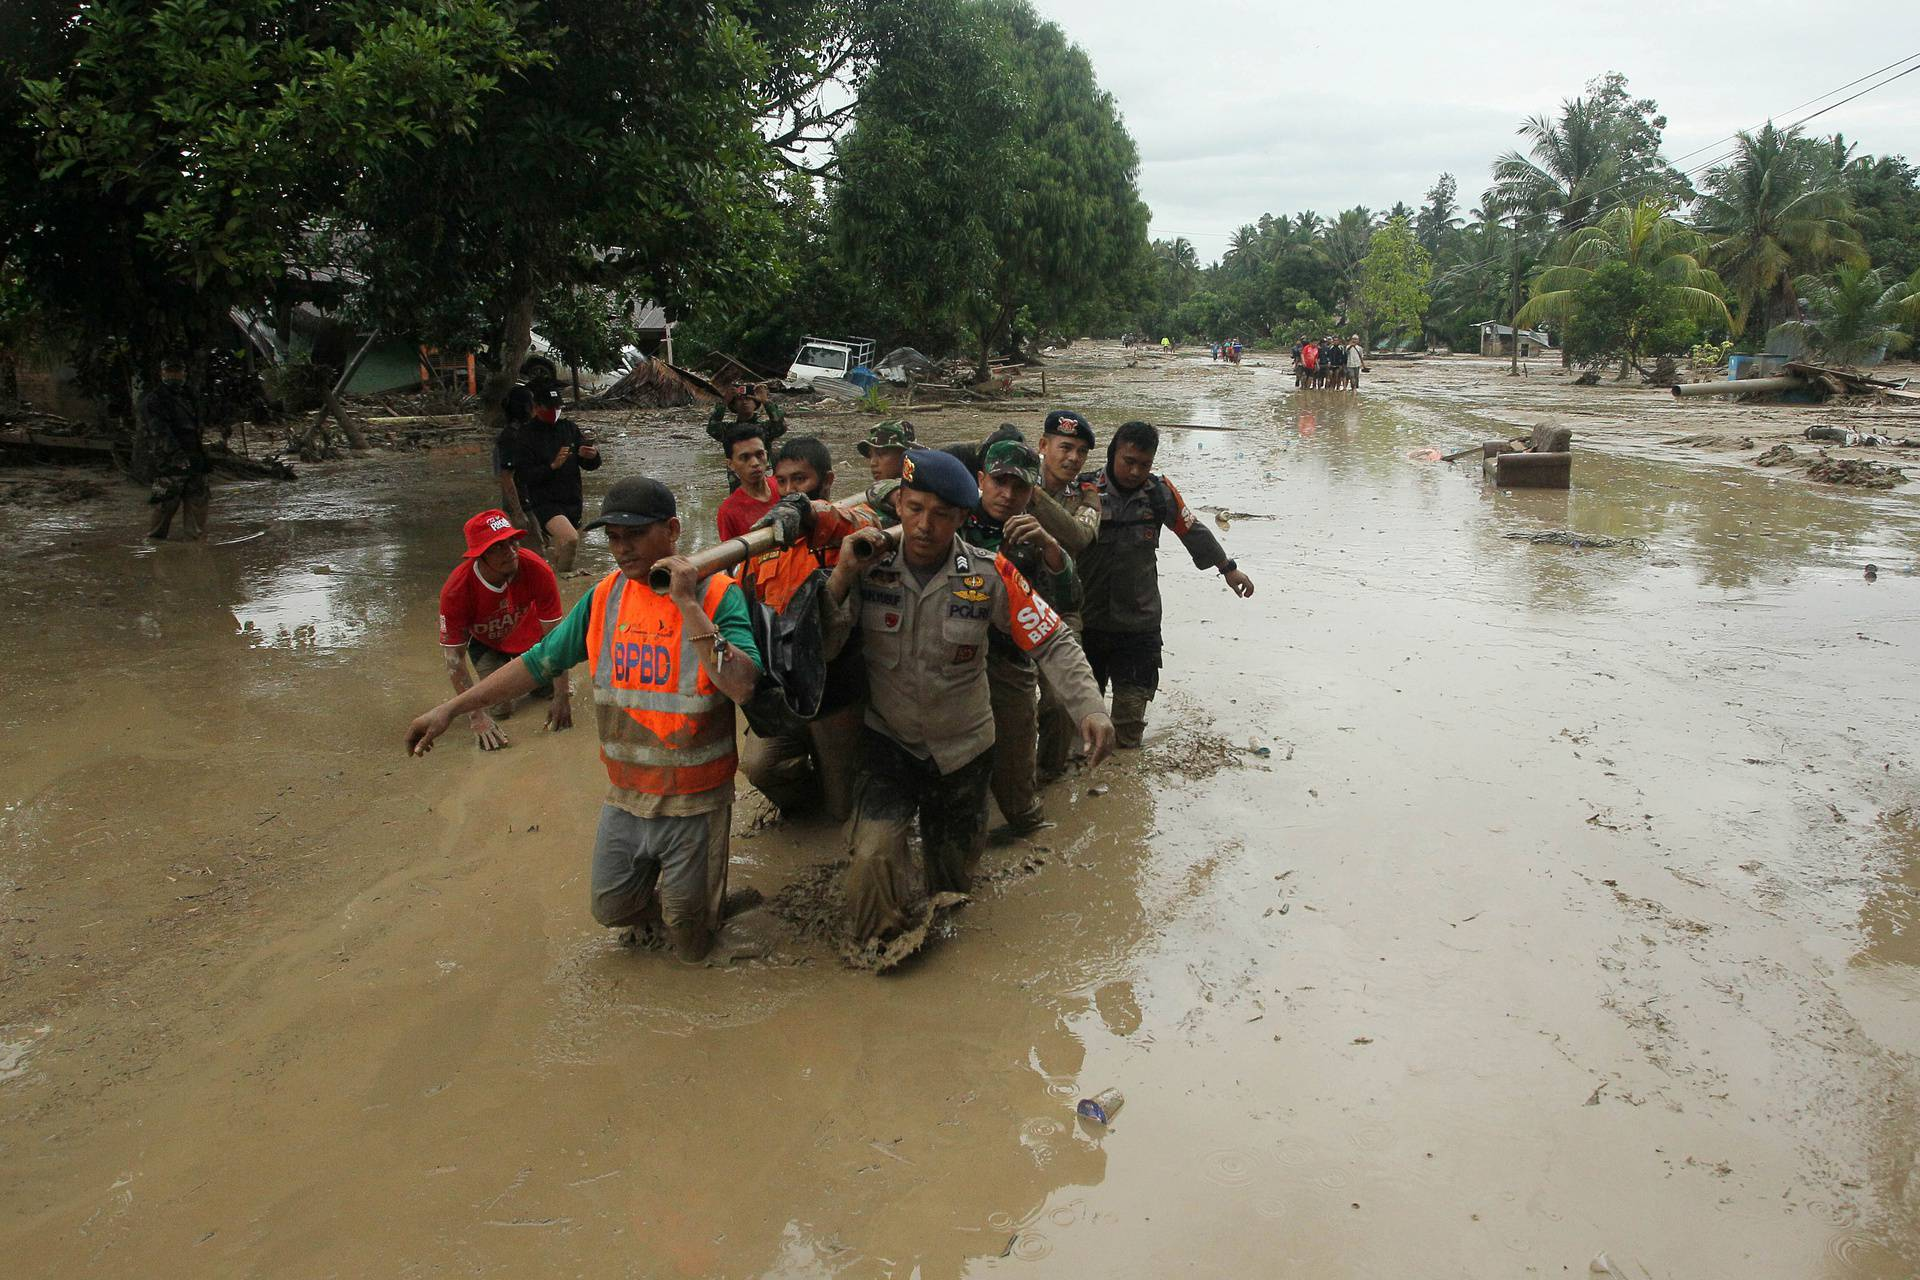 Officers evacuate victims in Radda Village, following flash floods that left several dead and dozens remain missing, in North Luwu in Sulawesi